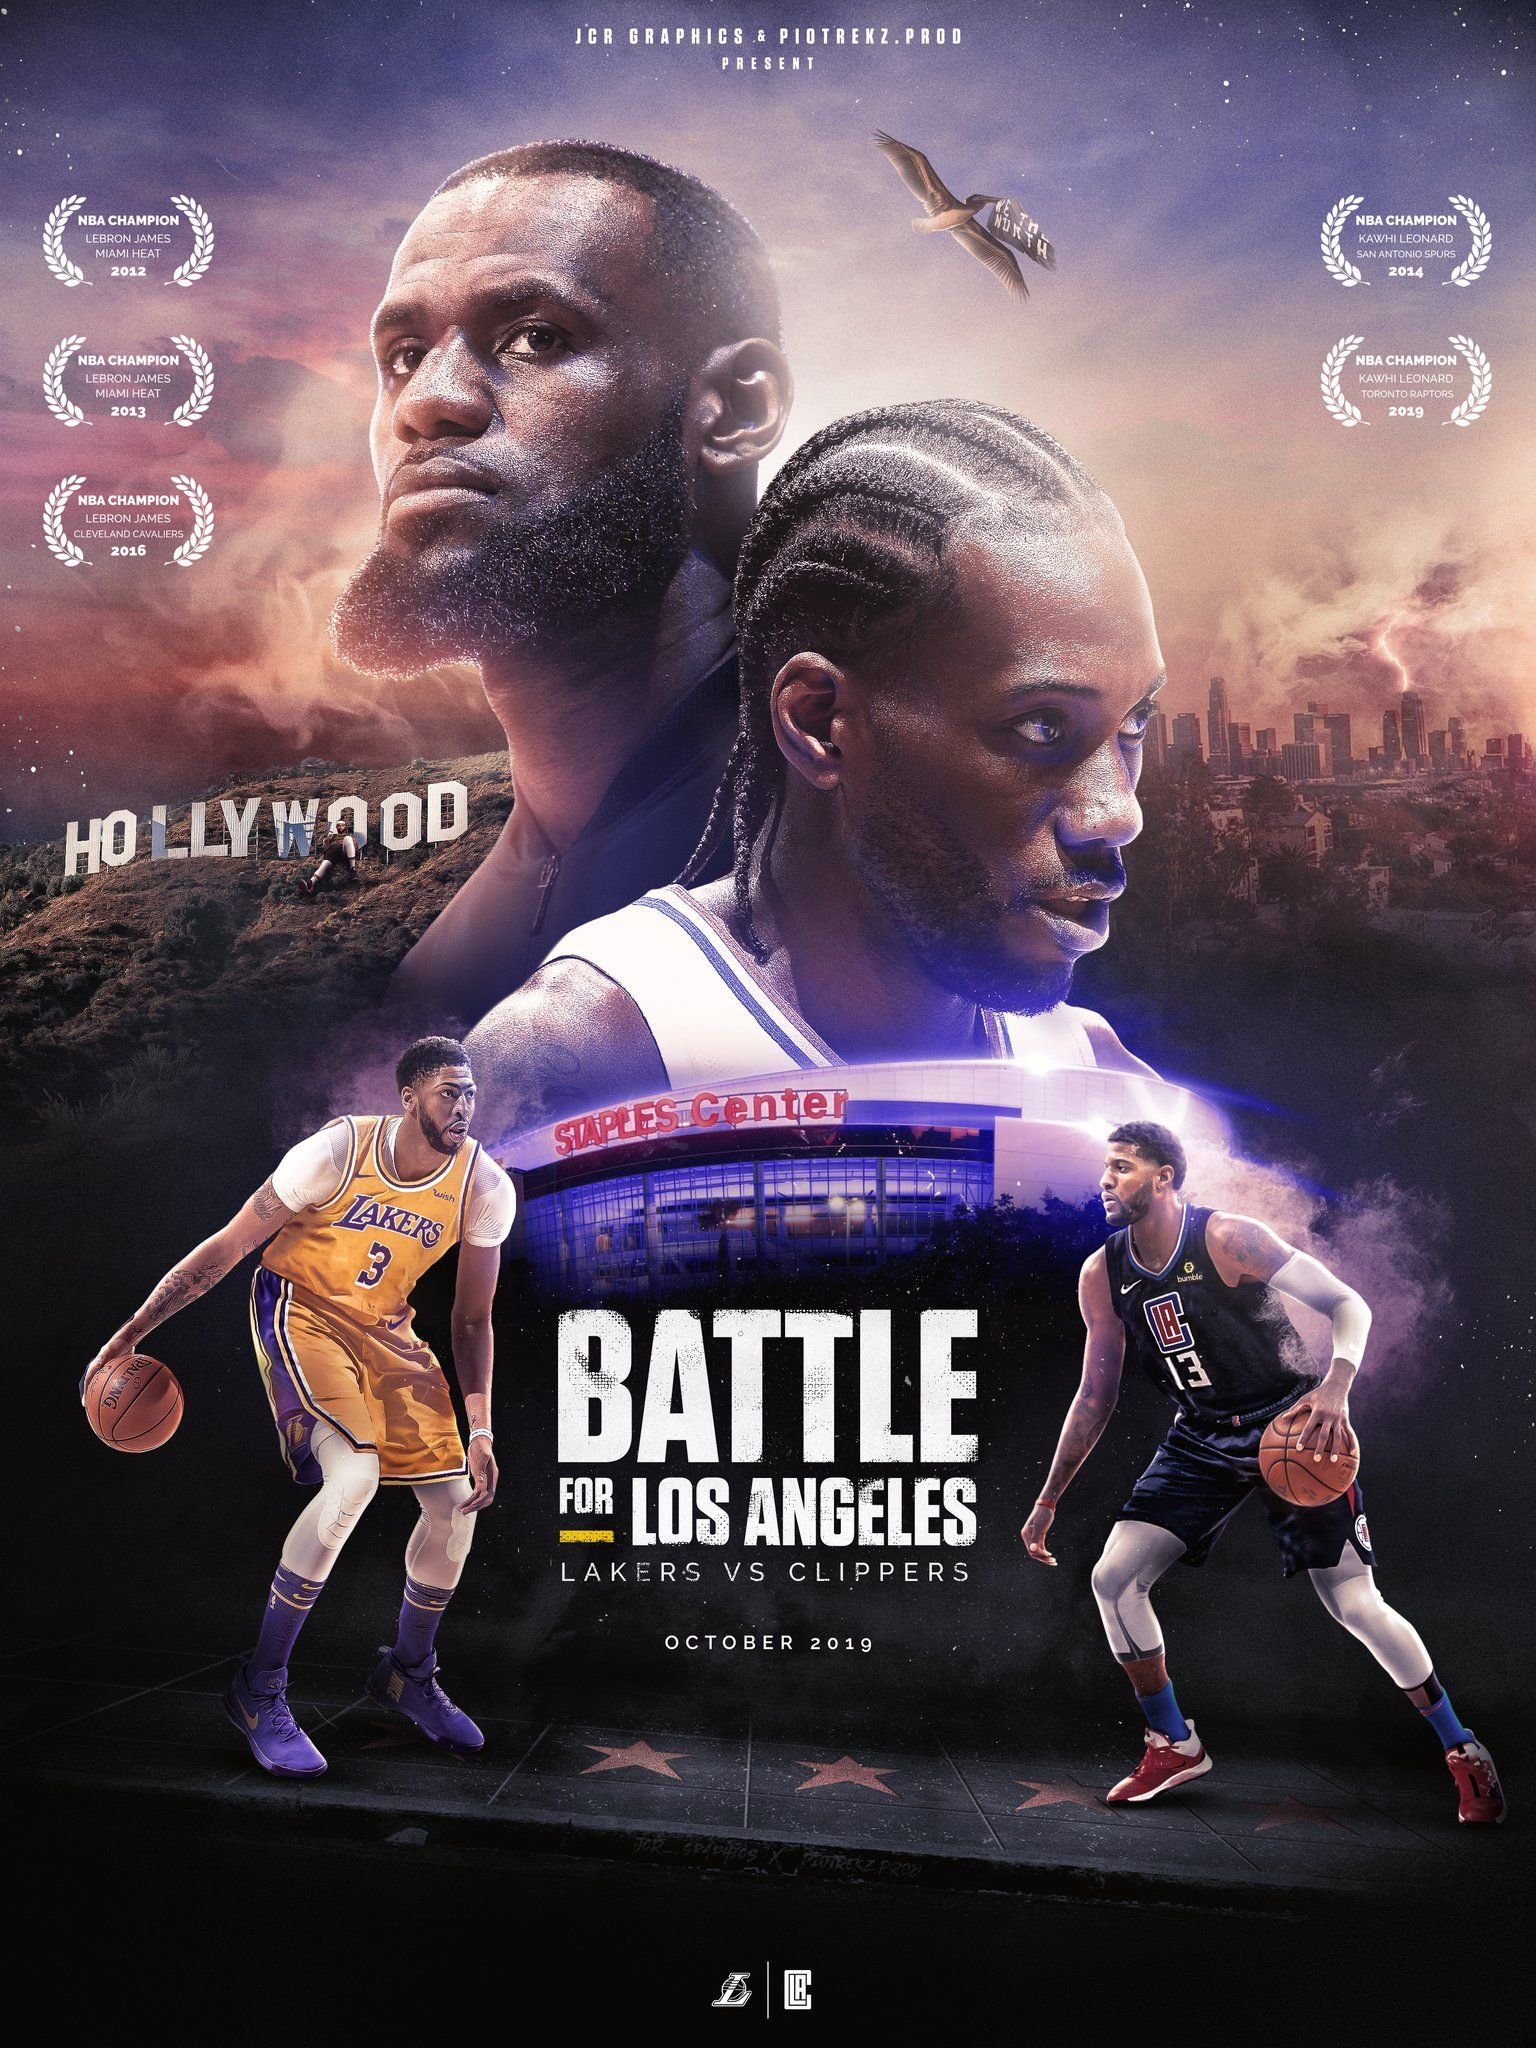 Jcr Graphics On Twitter Lakers Vs Clippers Lakers Vs Los Angeles Clippers